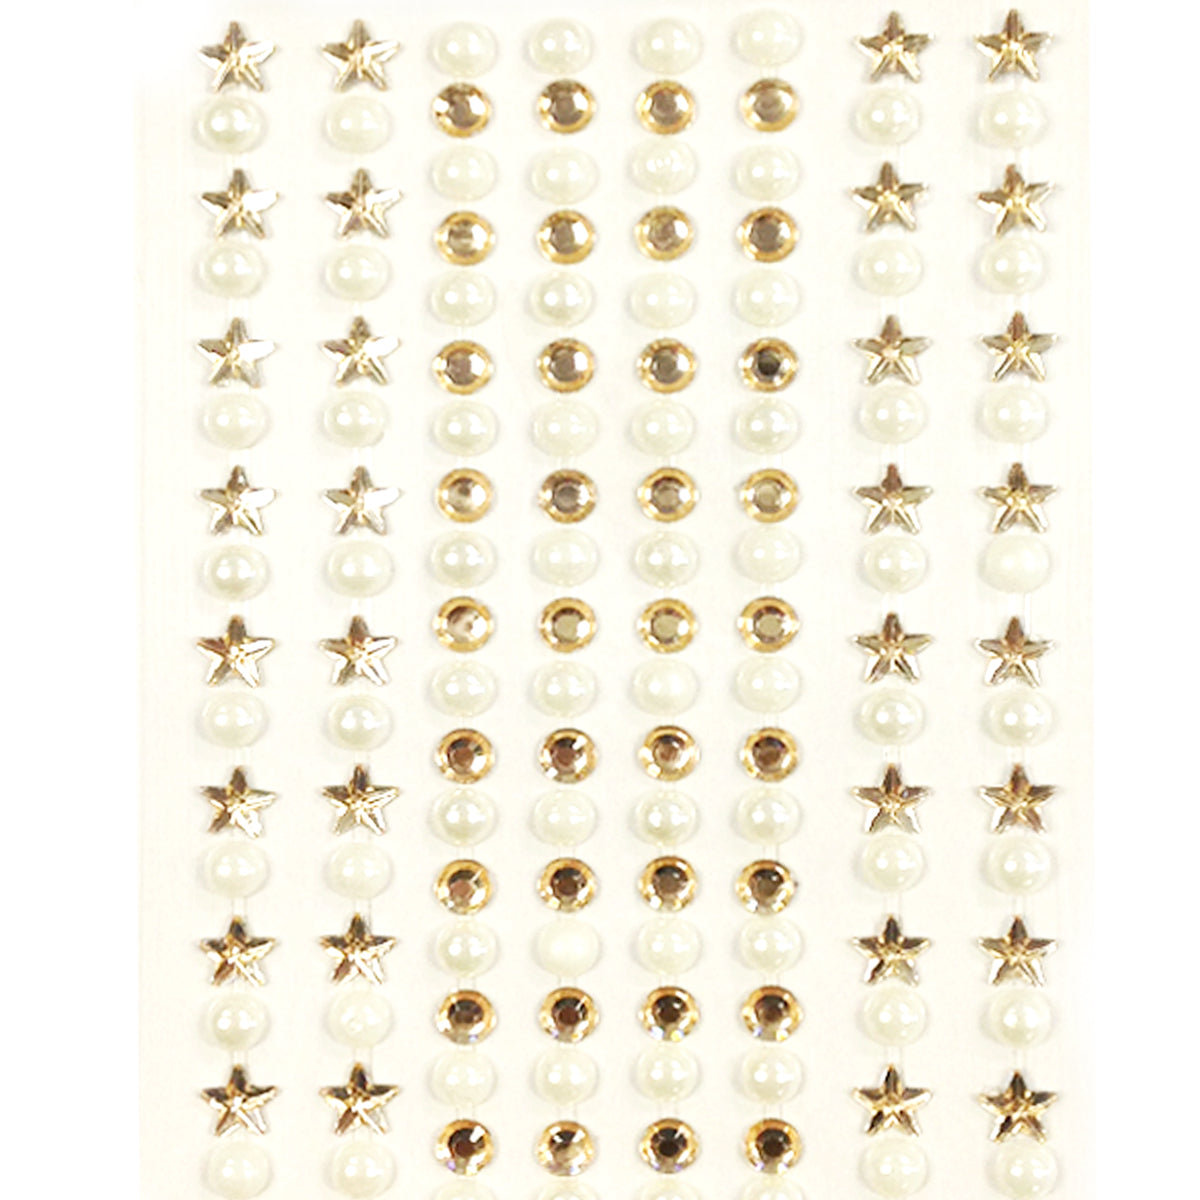 Wrapables 164 pieces Crystal Star and Pearl Stickers Adhesive Rhinestones